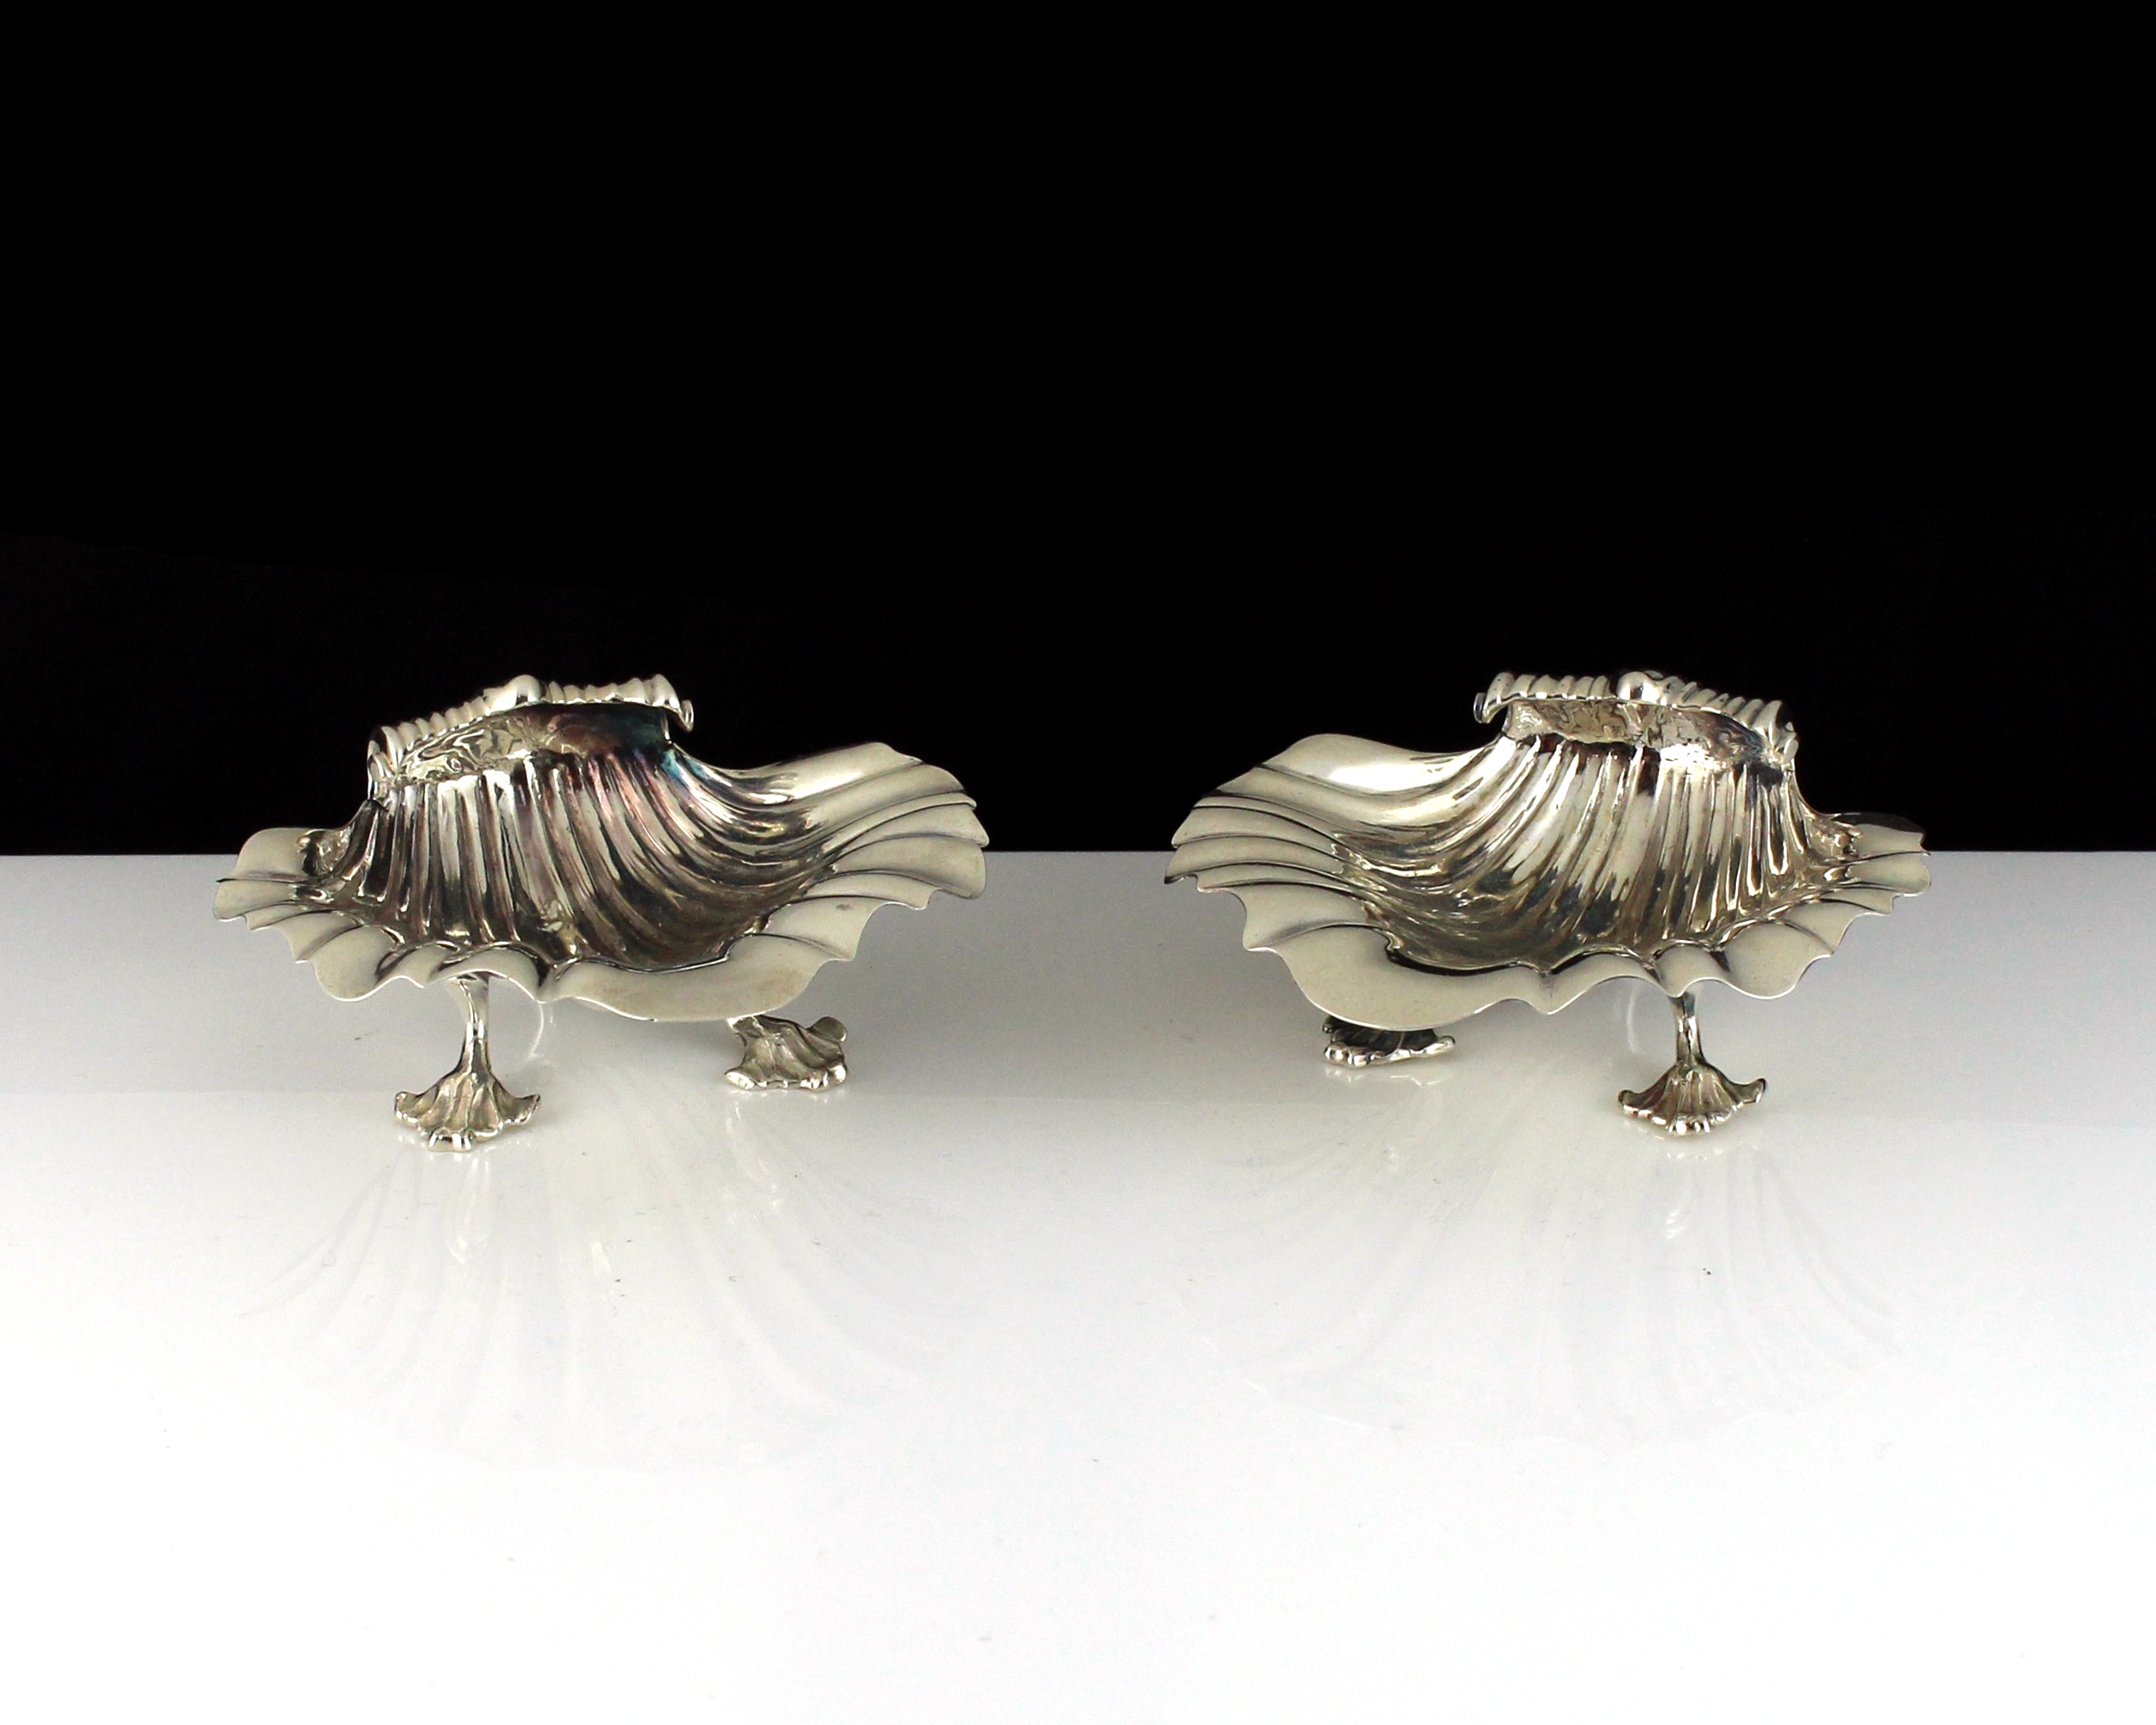 Los 35 - A pair of antique George IV Sterling Silver scallop shell salt cellars by George Fox, London 1827